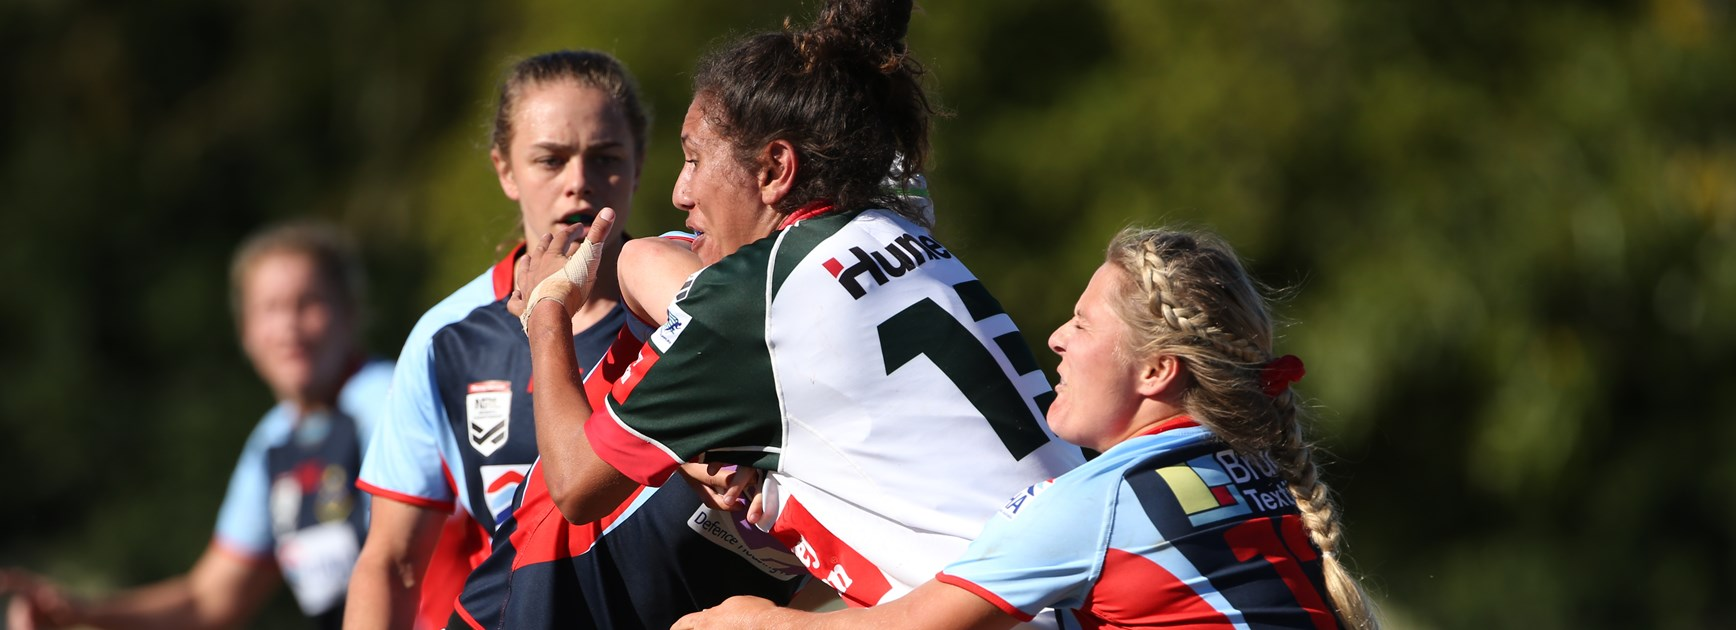 Five things to watch: Women's National Championships